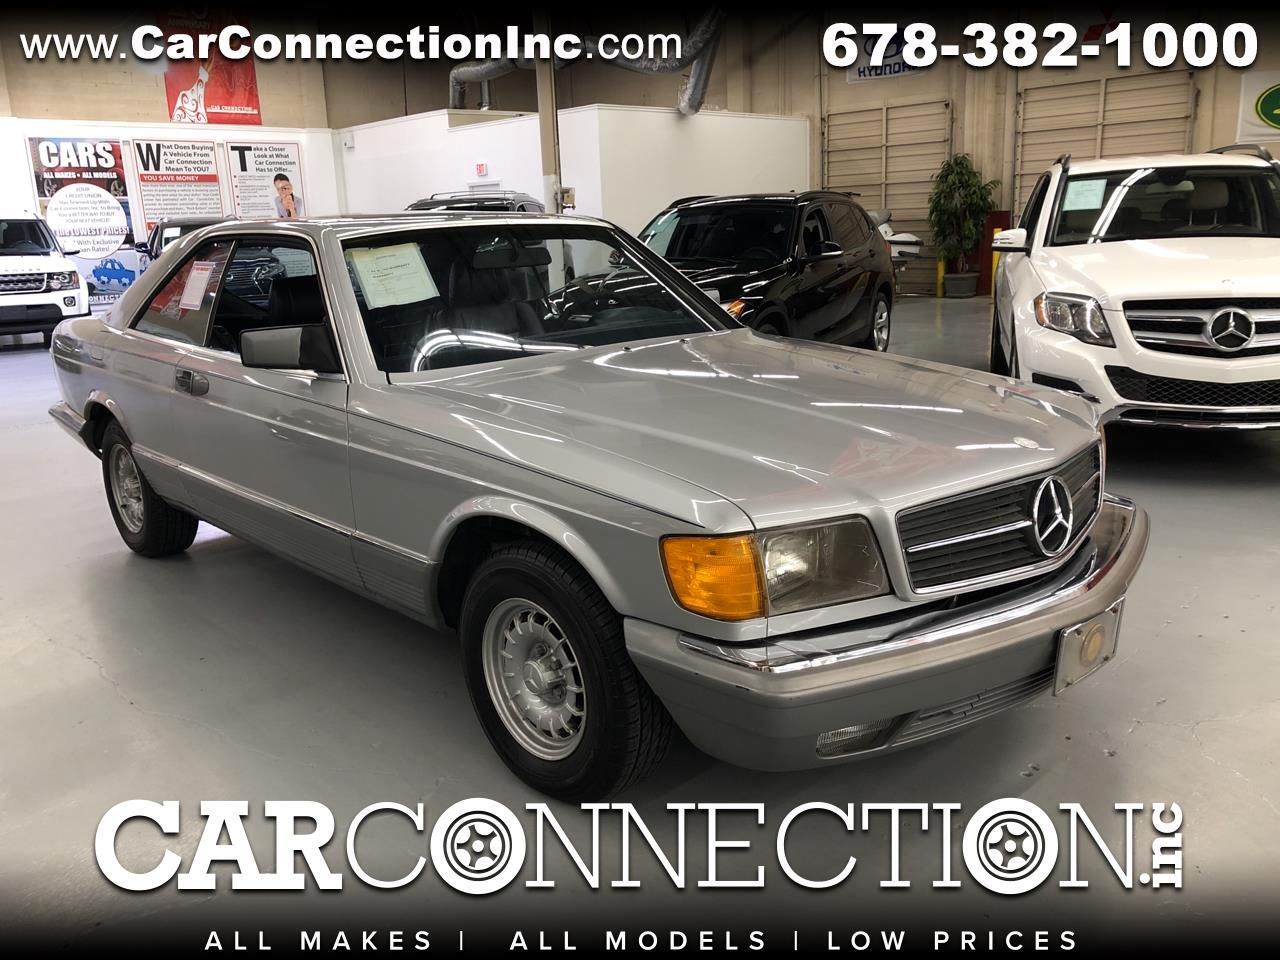 1983 Mercedes-Benz 380 Series 2dr Coupe 380SEC